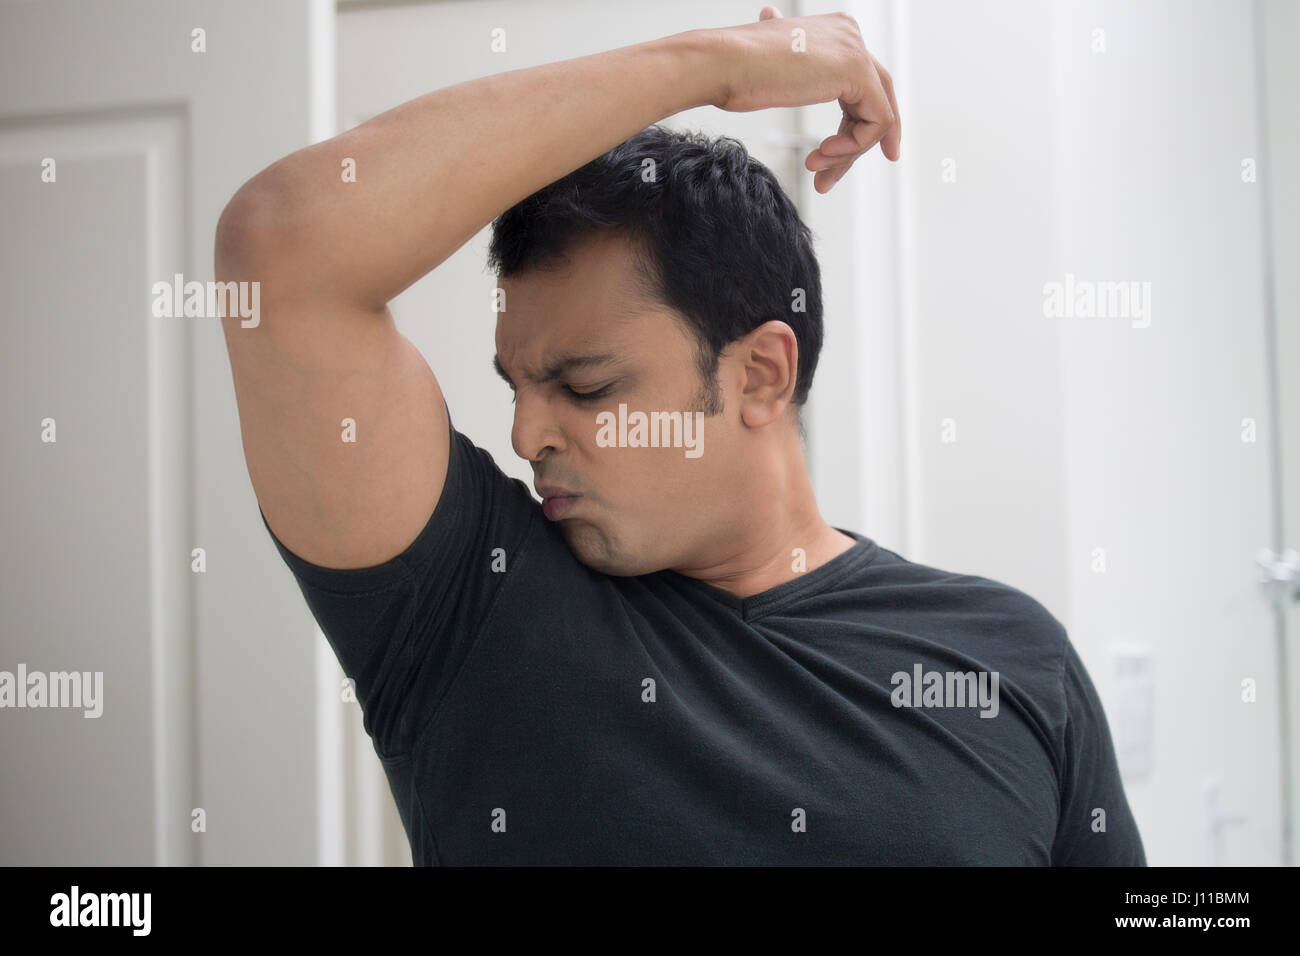 Closeup portrait, grumpy sweaty young man in black t-shirt, sniffing himself, very foul situation, isolated mirror - Stock Image